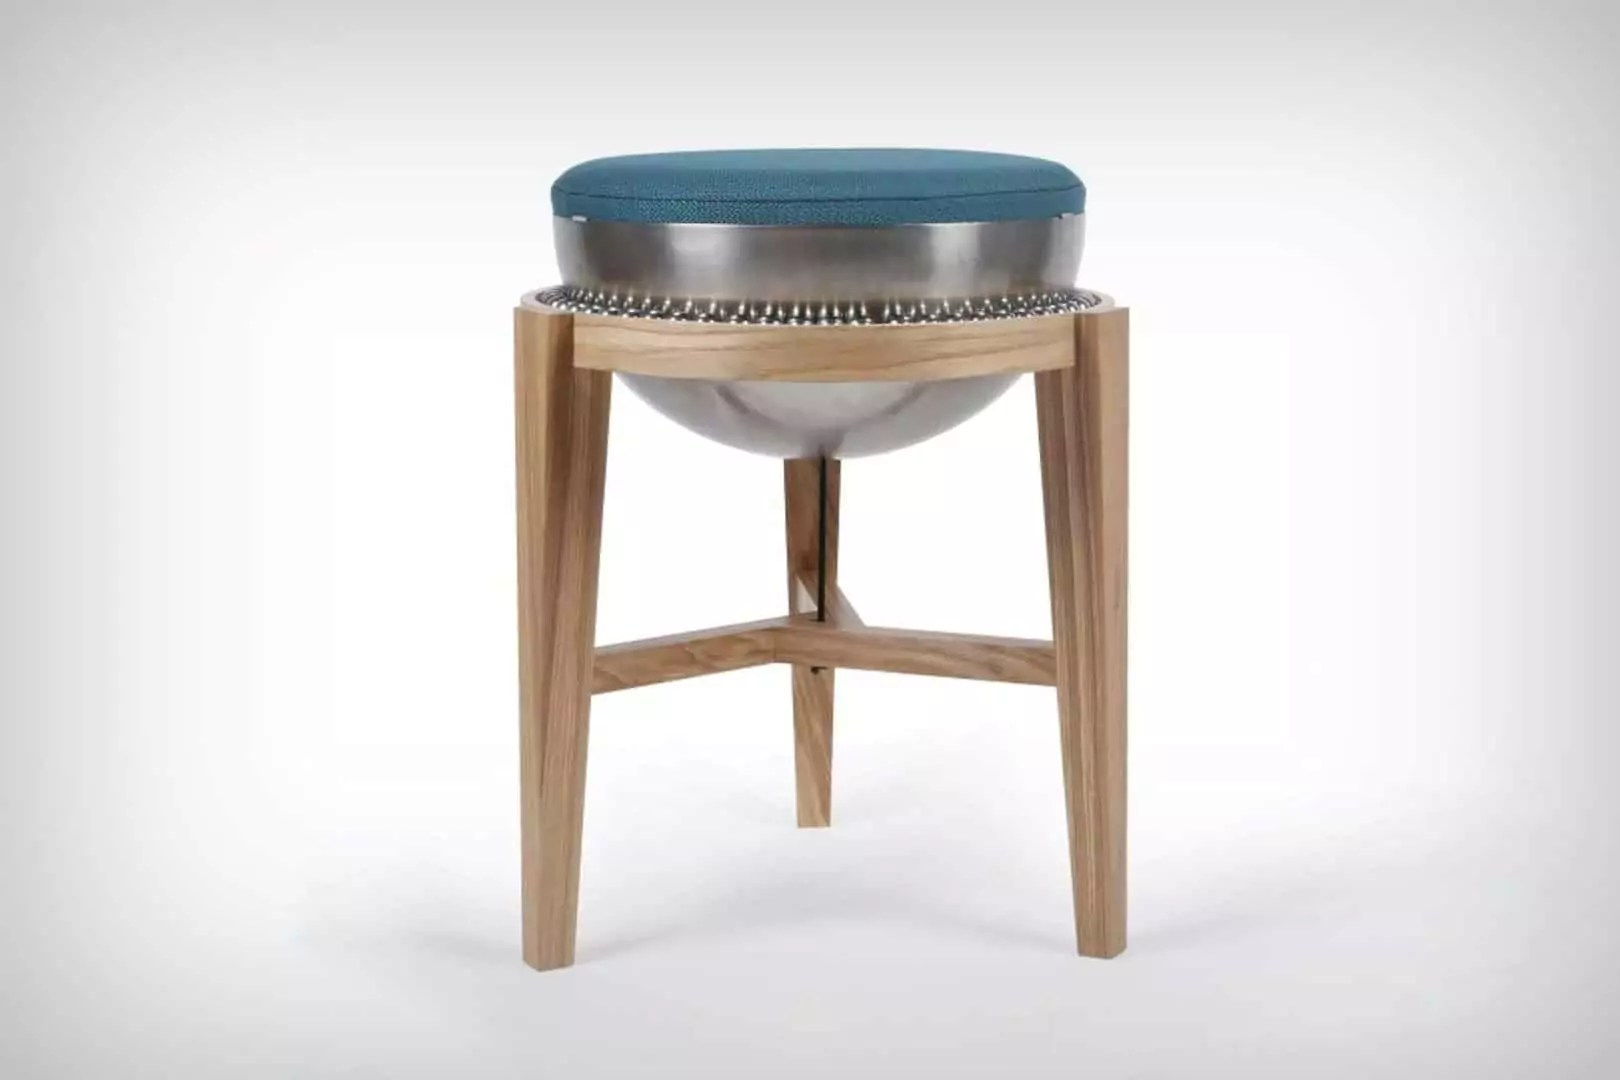 Ovini Balance Stool: A Cool-Stool for Your Healthy Sitting from Yanko Design